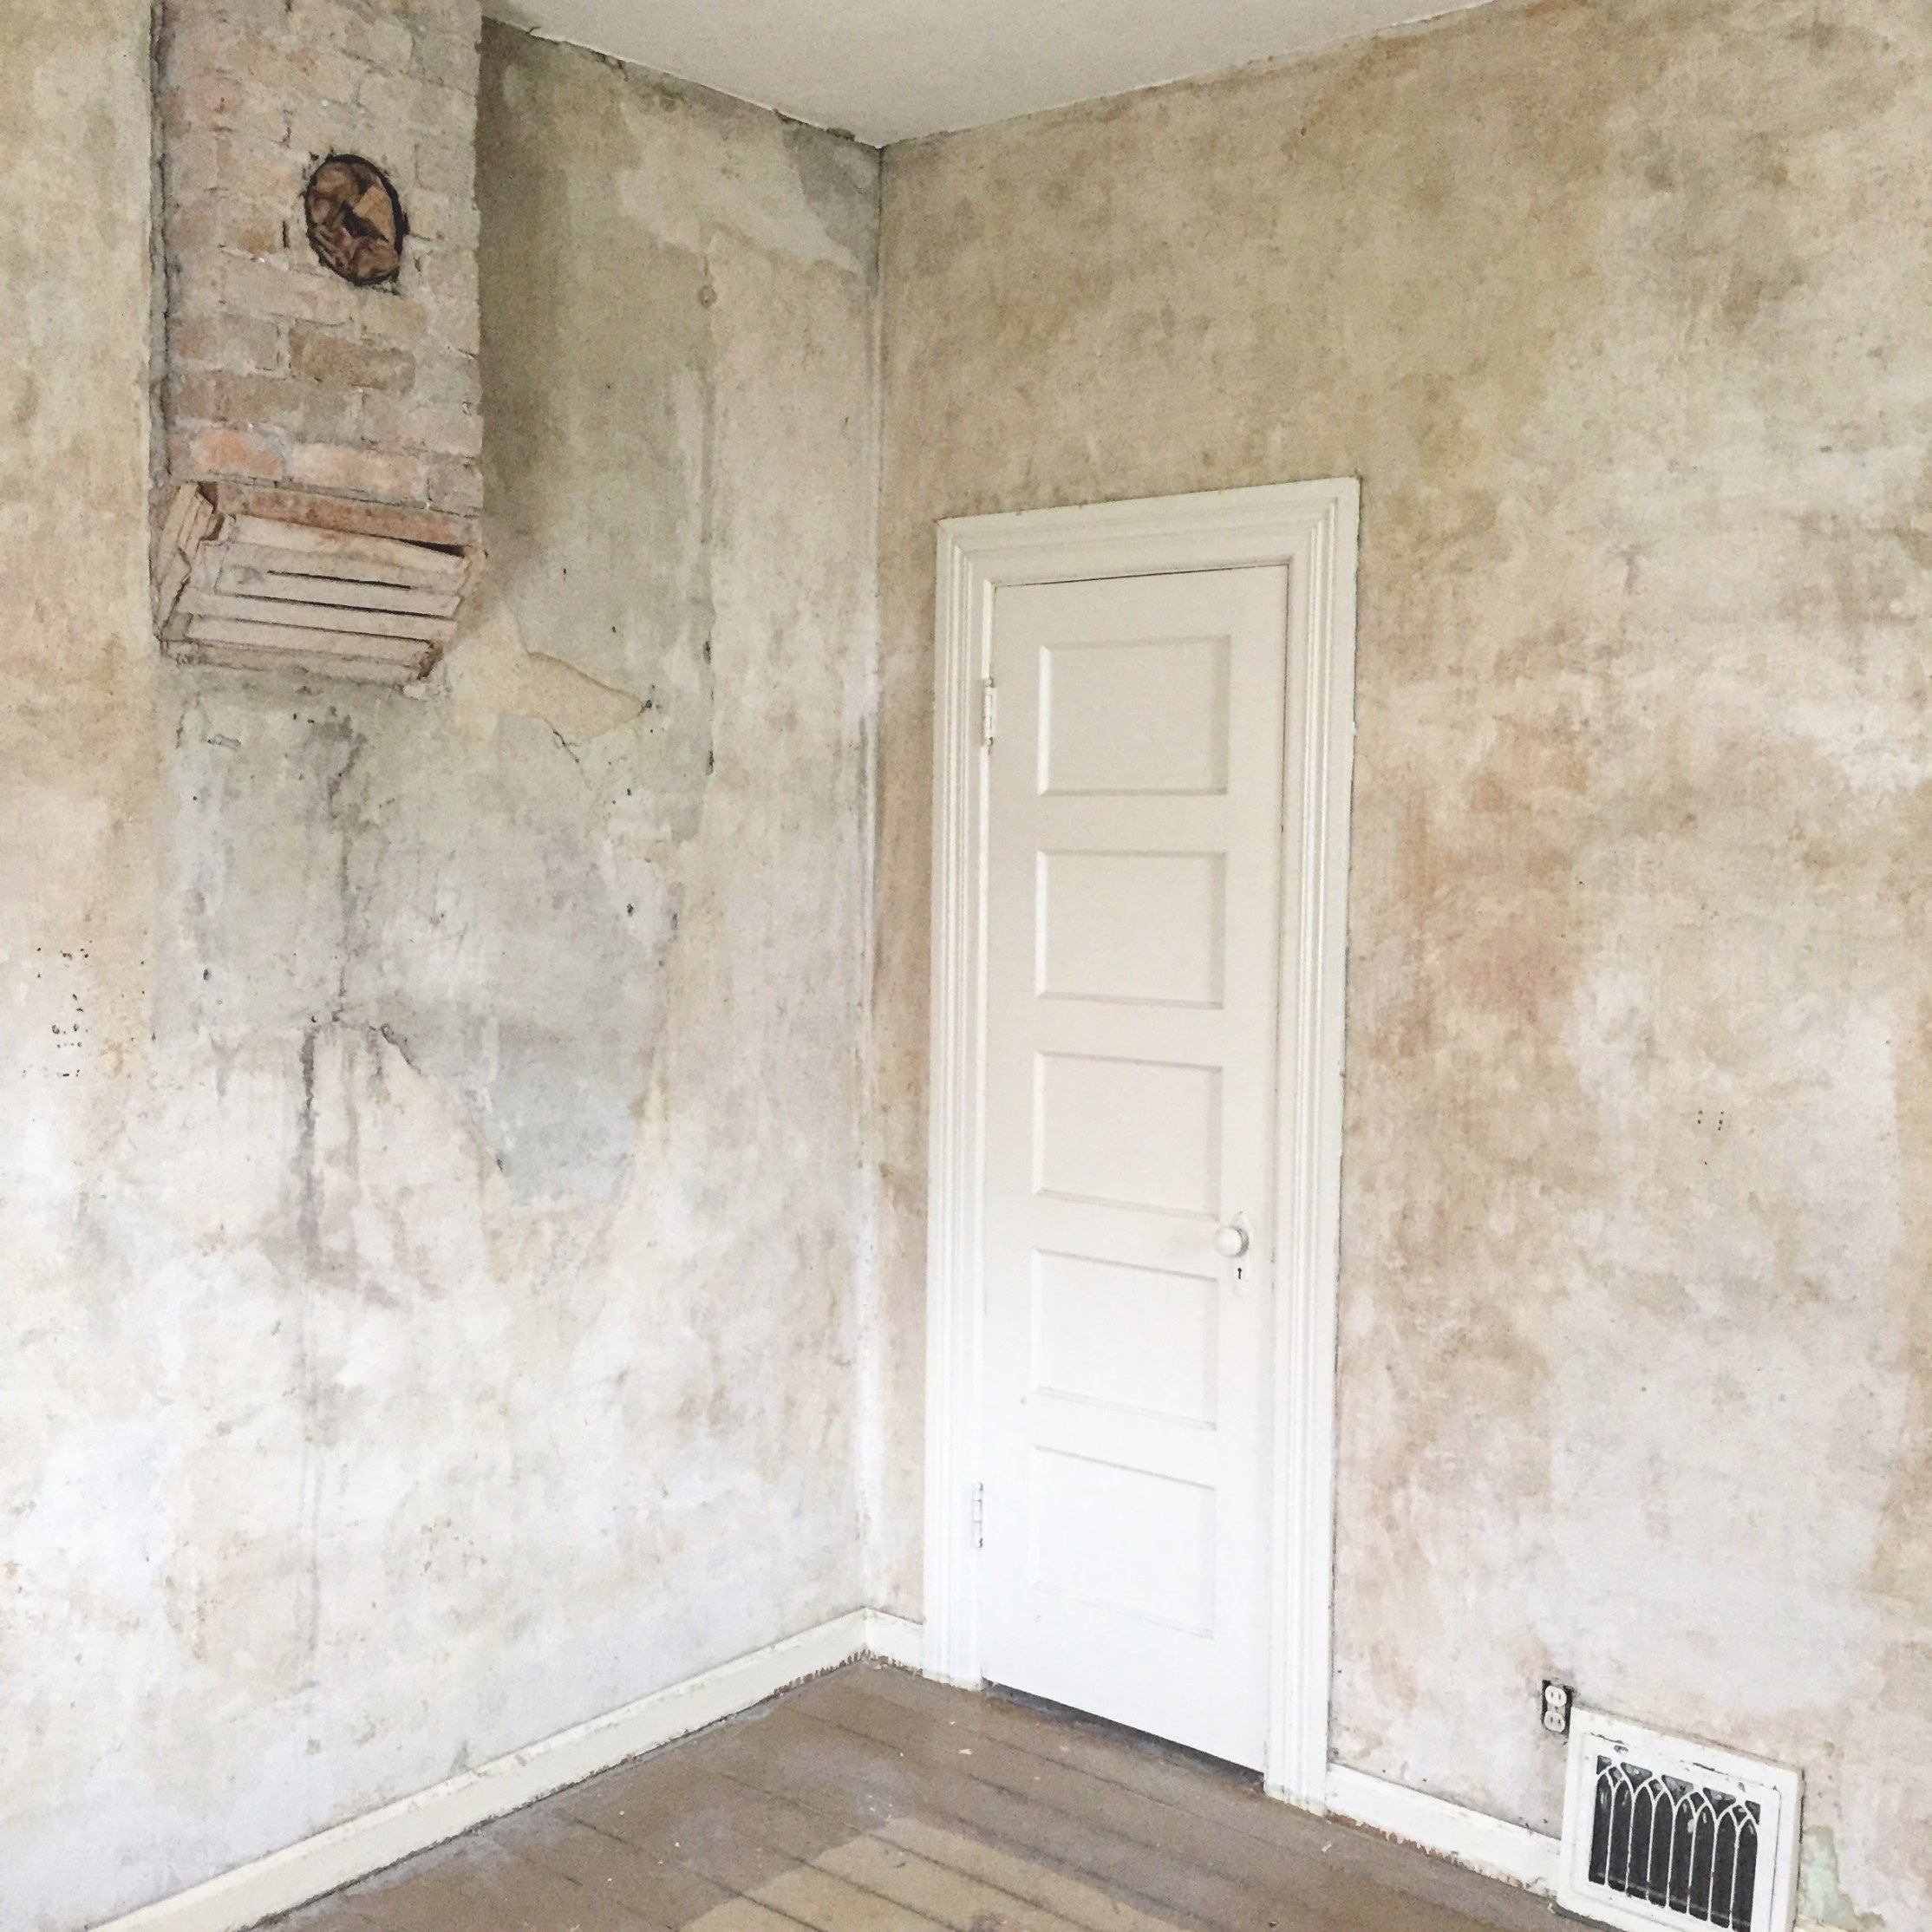 What To Do With Old Plaster Walls - The Schmidt Home in Plaster Walls